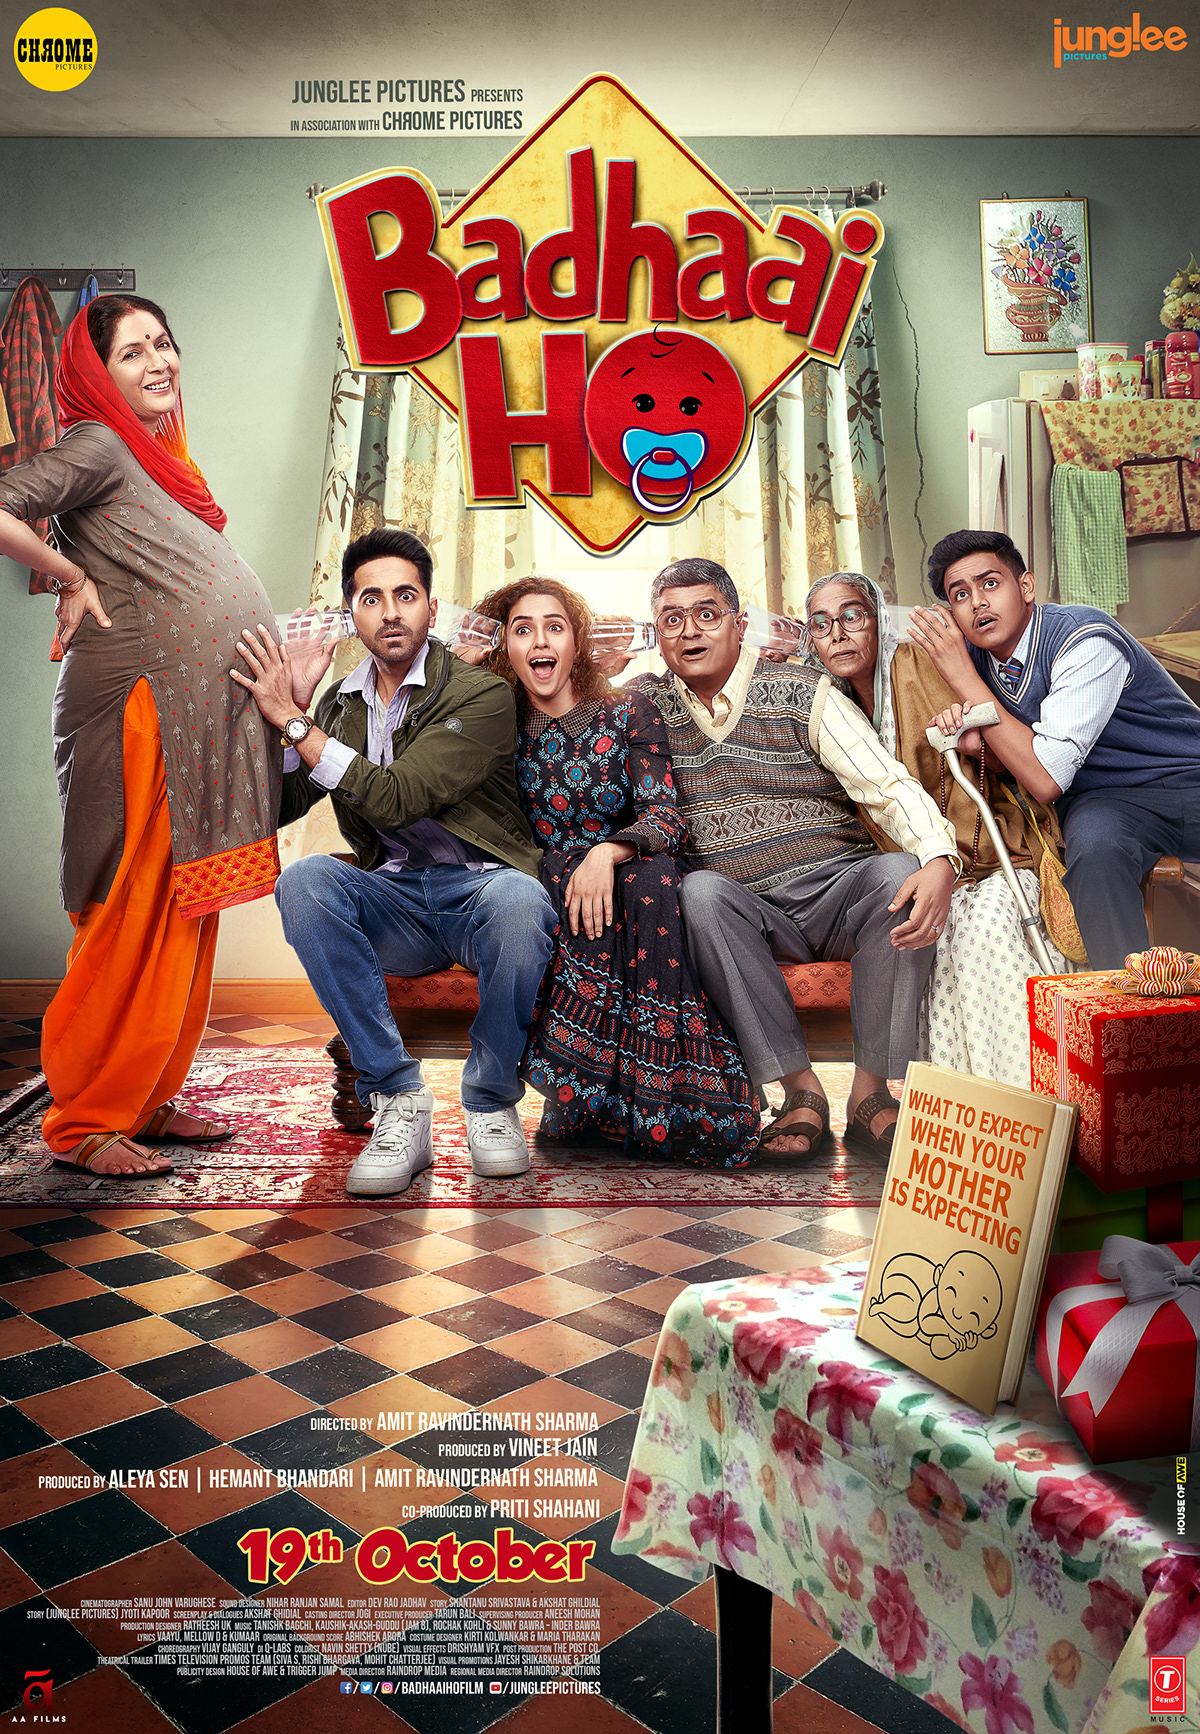 Badhaai Ho (2018) 480p + 720p + 1080p WEB-DL x264 AAC Hindi 400MB + 1.00GB + 3.75GB Download | Watch Online [GDrive]